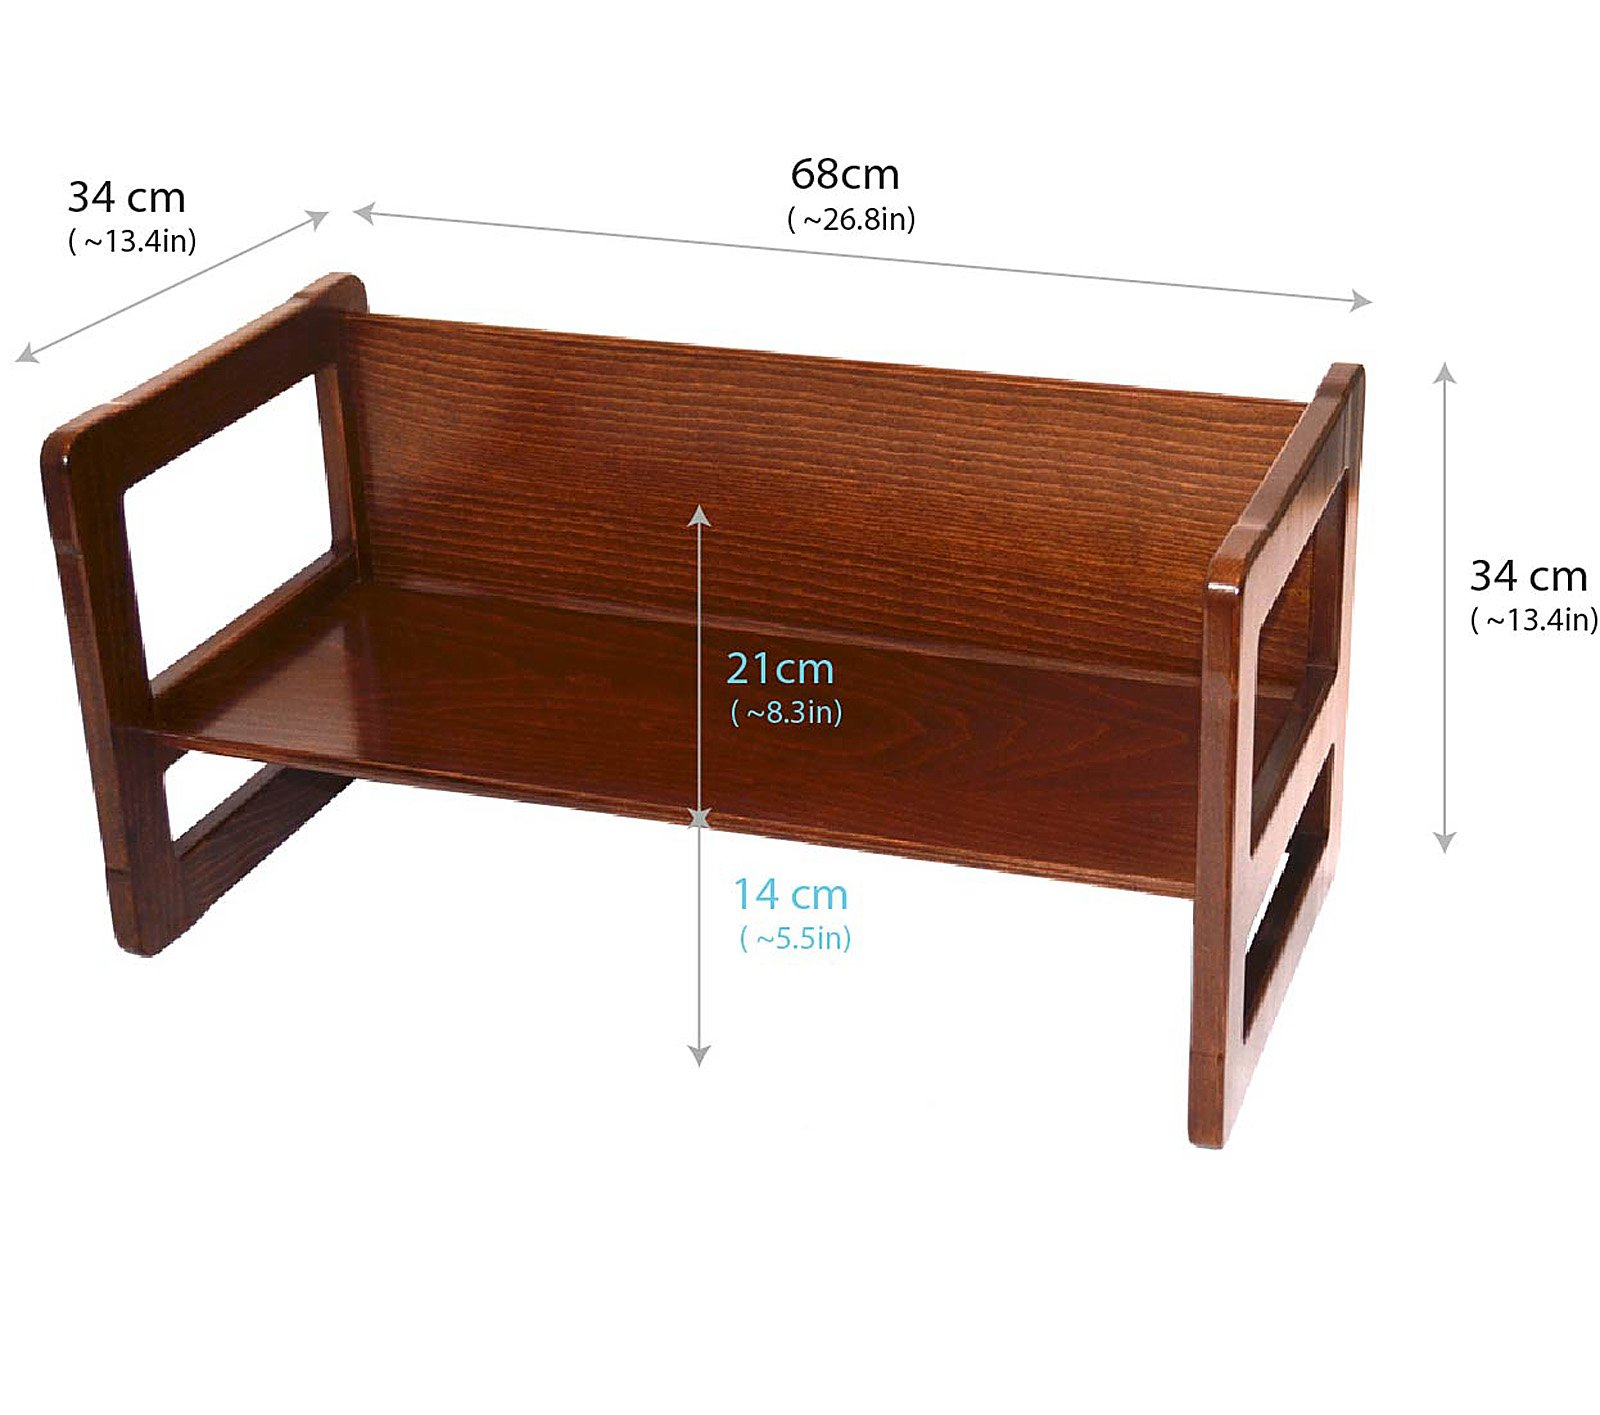 3 in 1 Childrens Multifunctional Furniture Set of 4, Two Small Chairs or Tables and One Small Bench or Table and One Large Bench or Table Beech Wood, Dark Stained by Obique Ltd (Image #4)